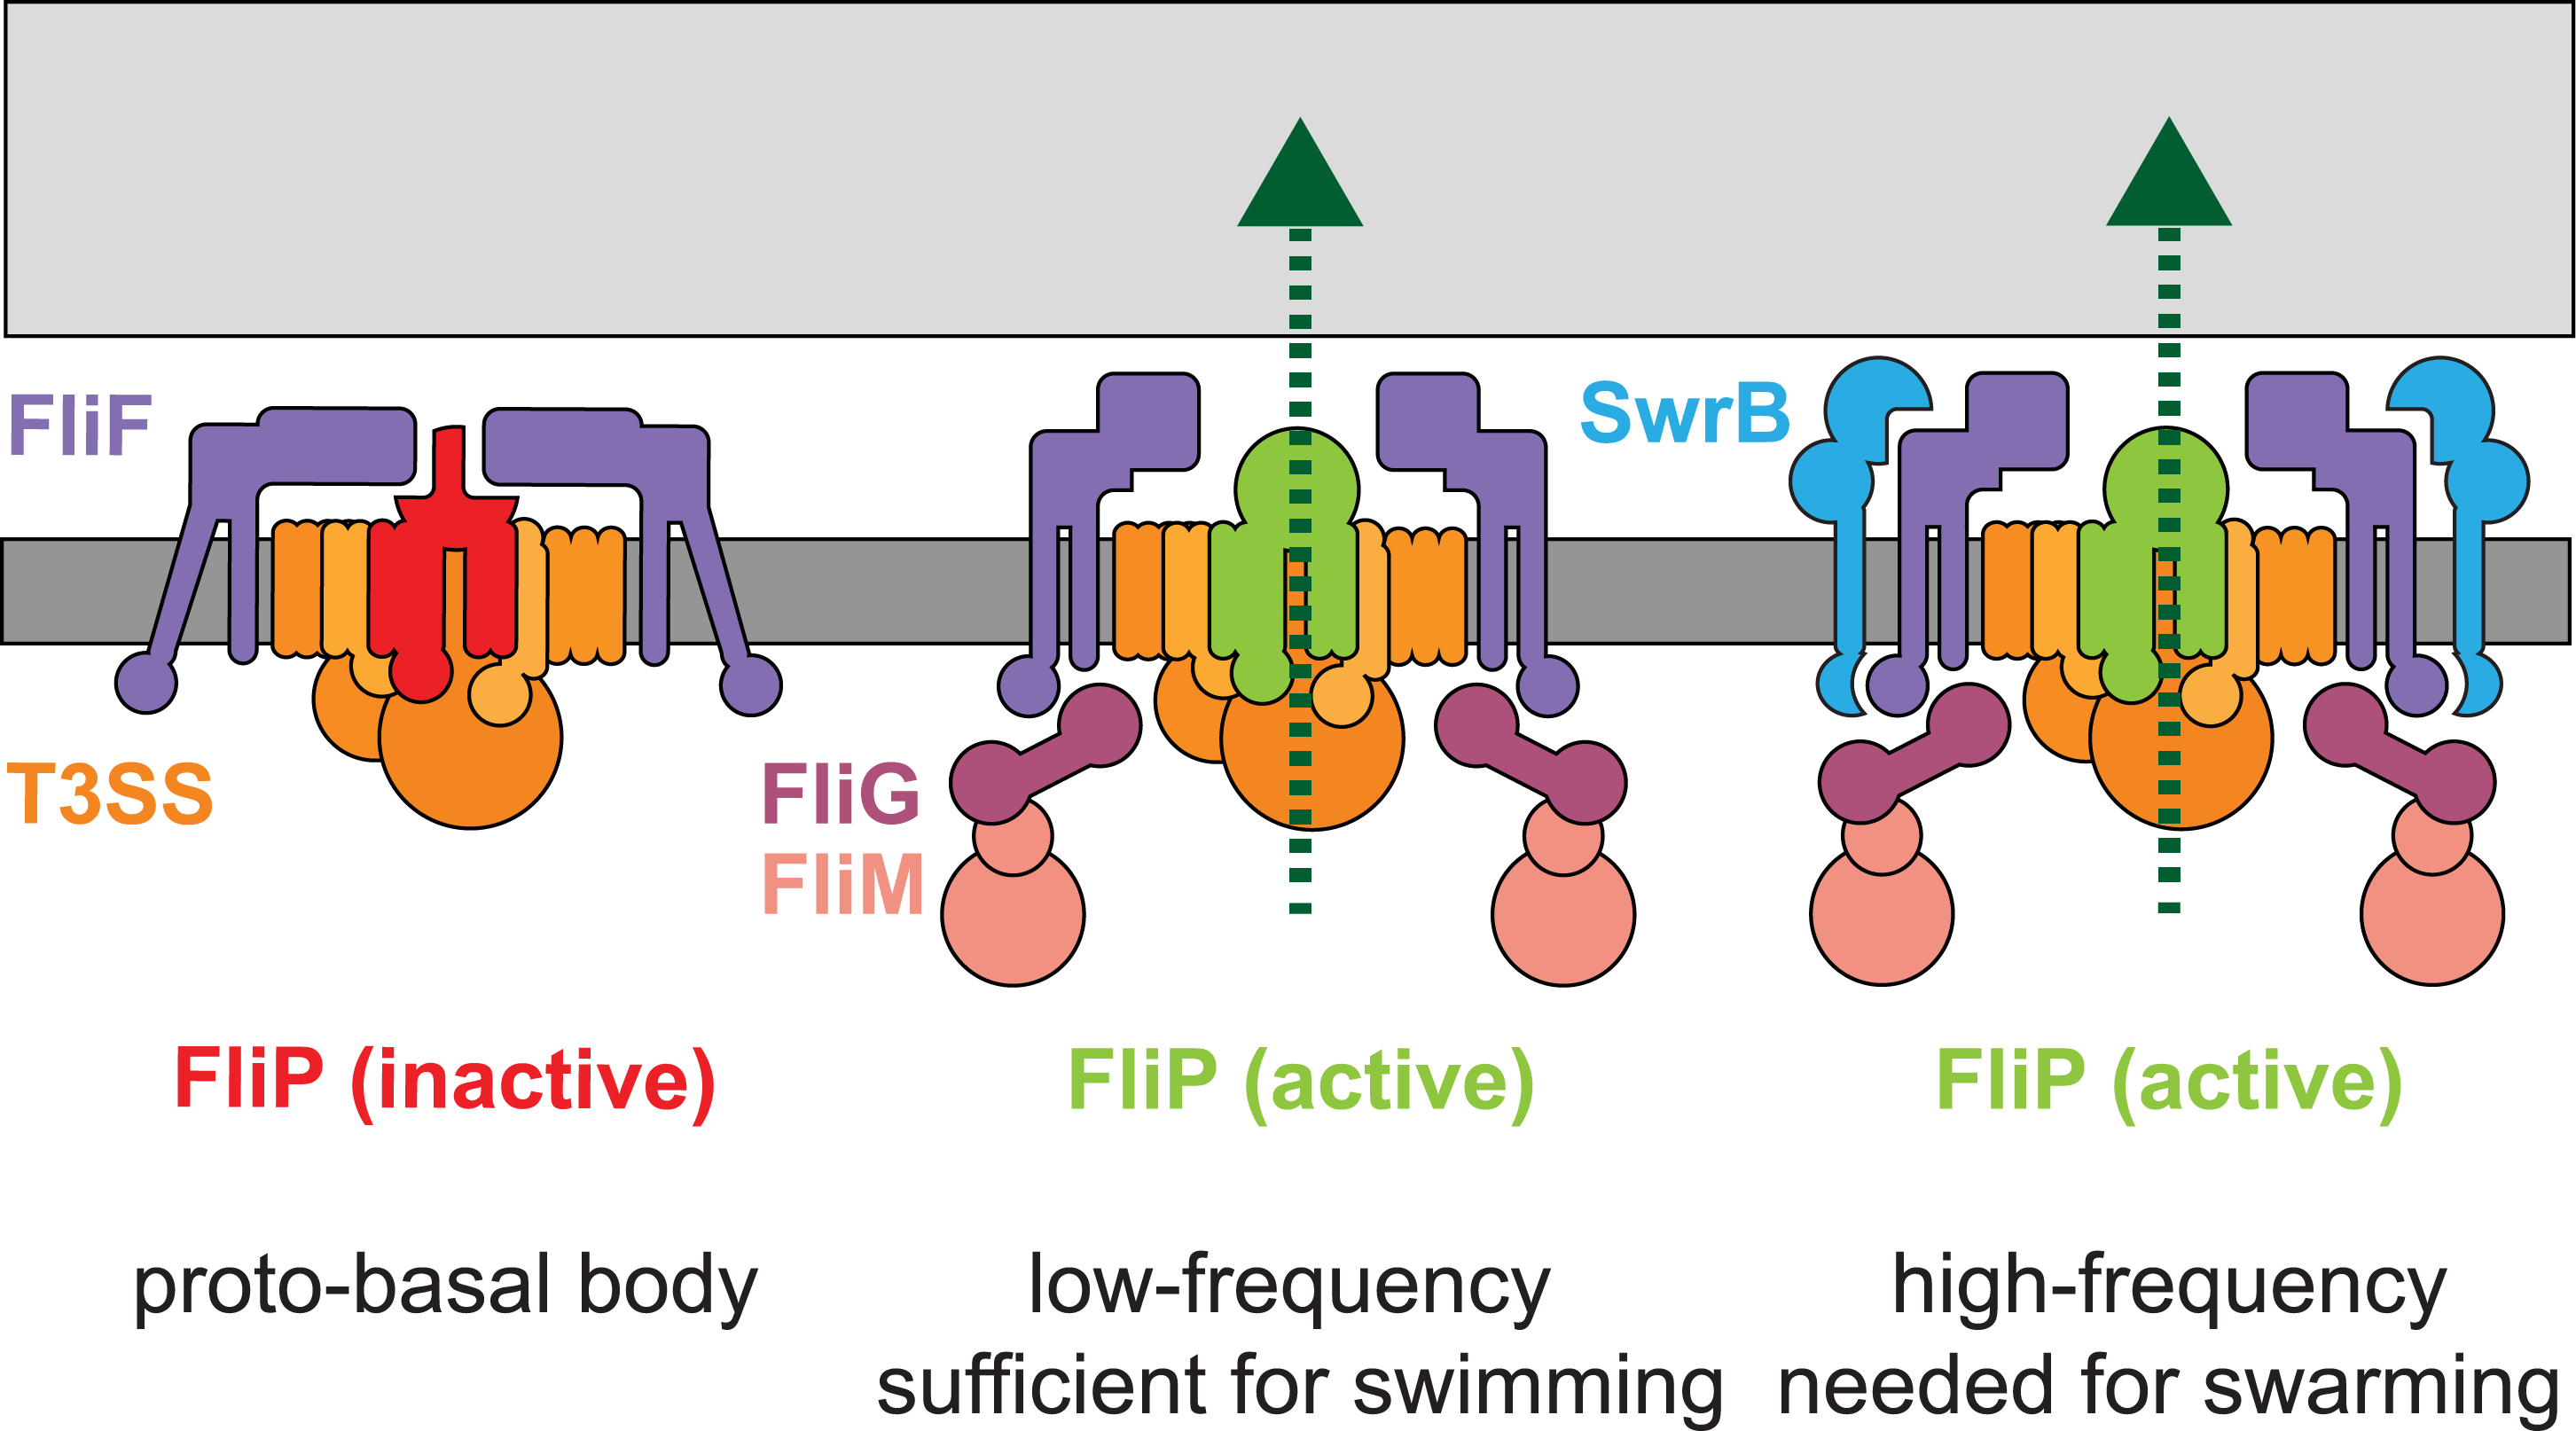 SwrB activates flagellar type III secretion.